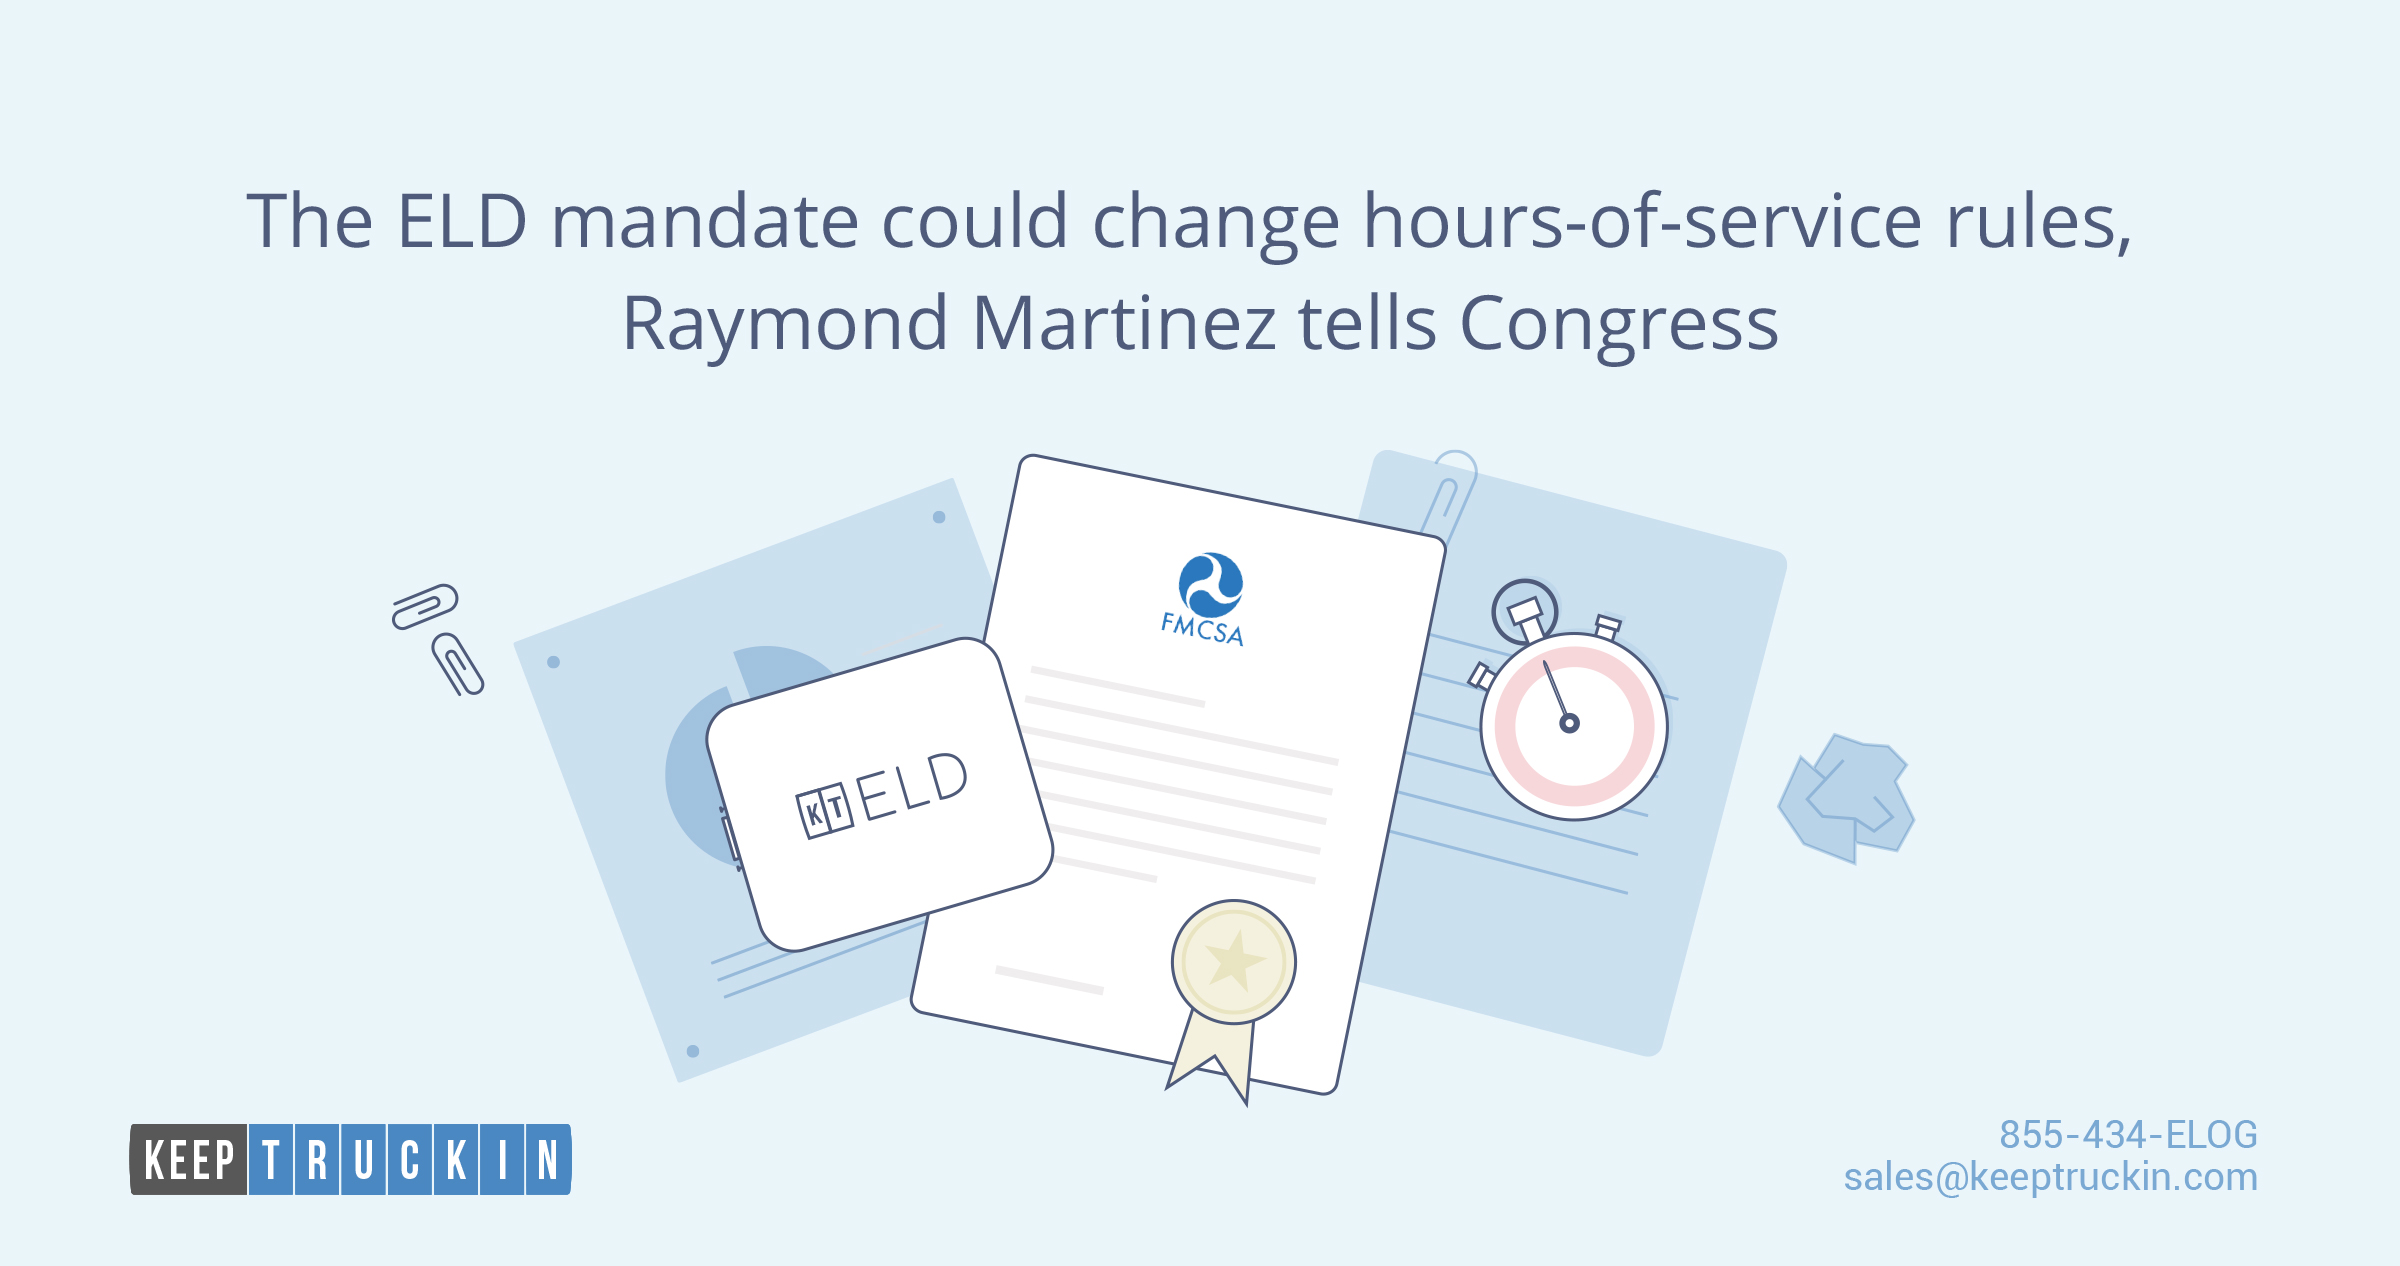 The ELD mandate could change hours-of-service rules, Raymond Martinez tells Congress